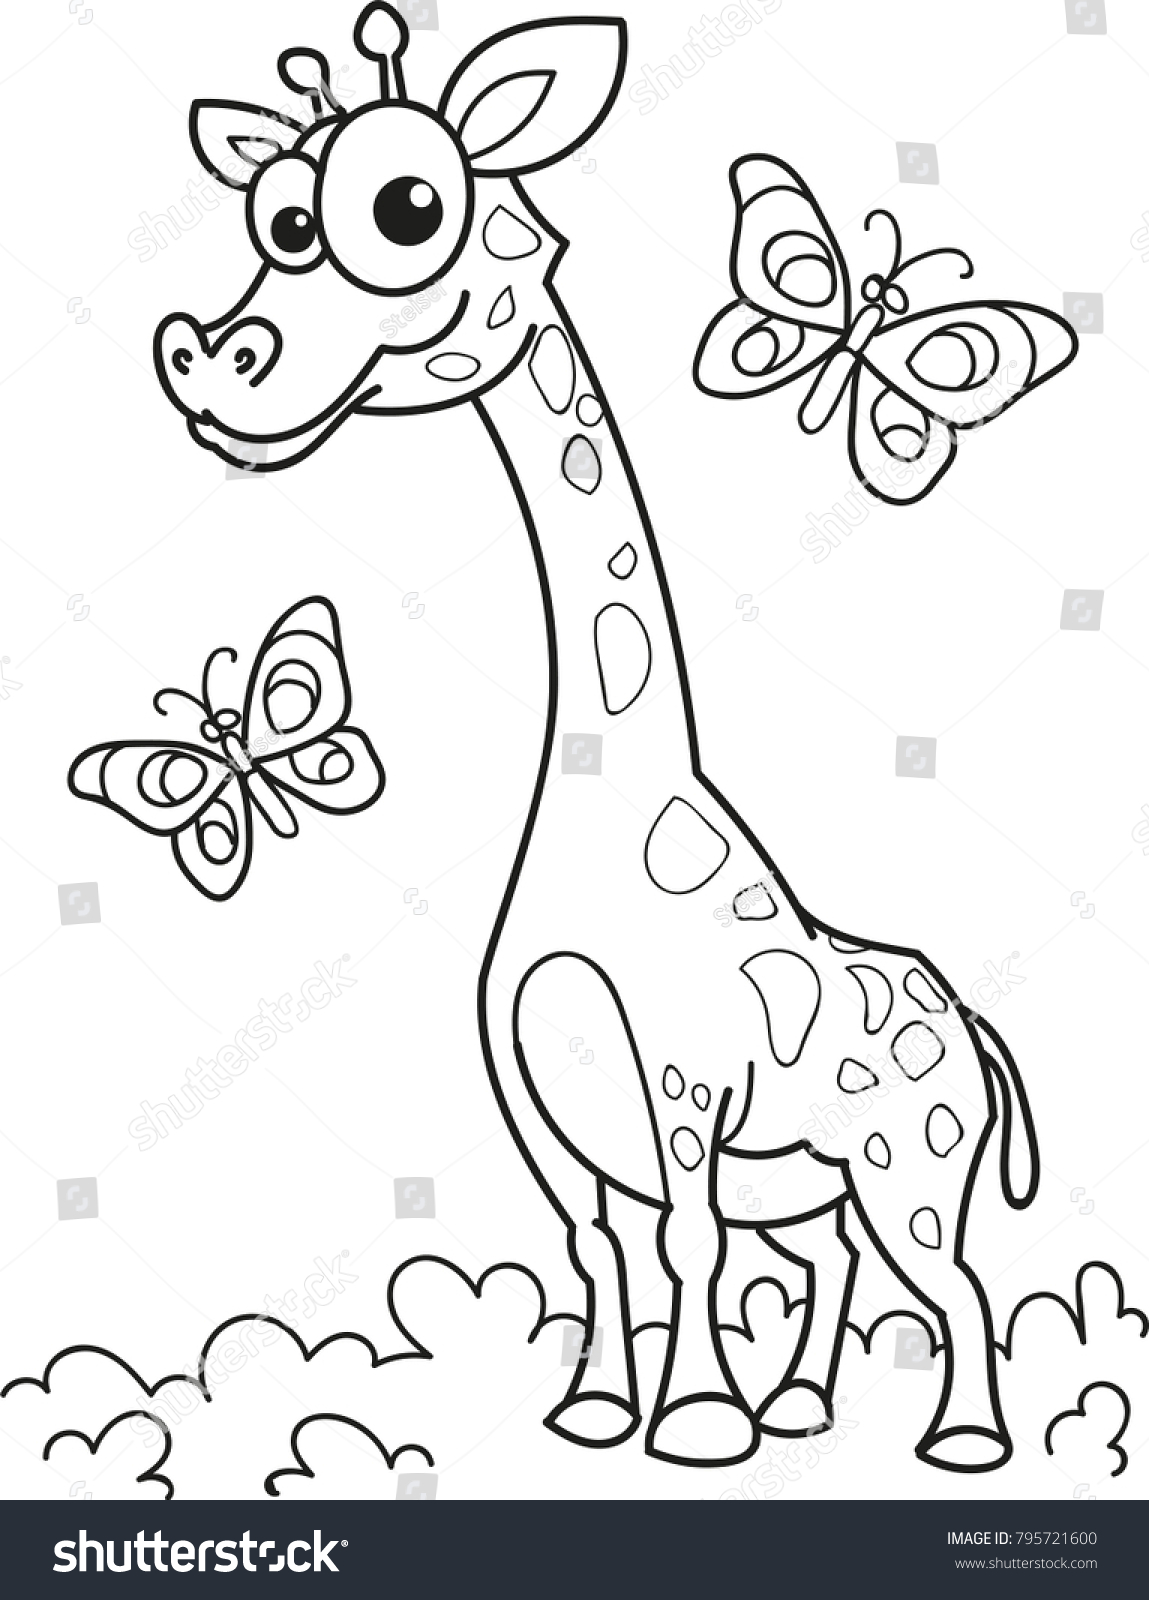 Coloring Page Outline Cartoon Smiling Giraffe Stock Vector 795721600 ...